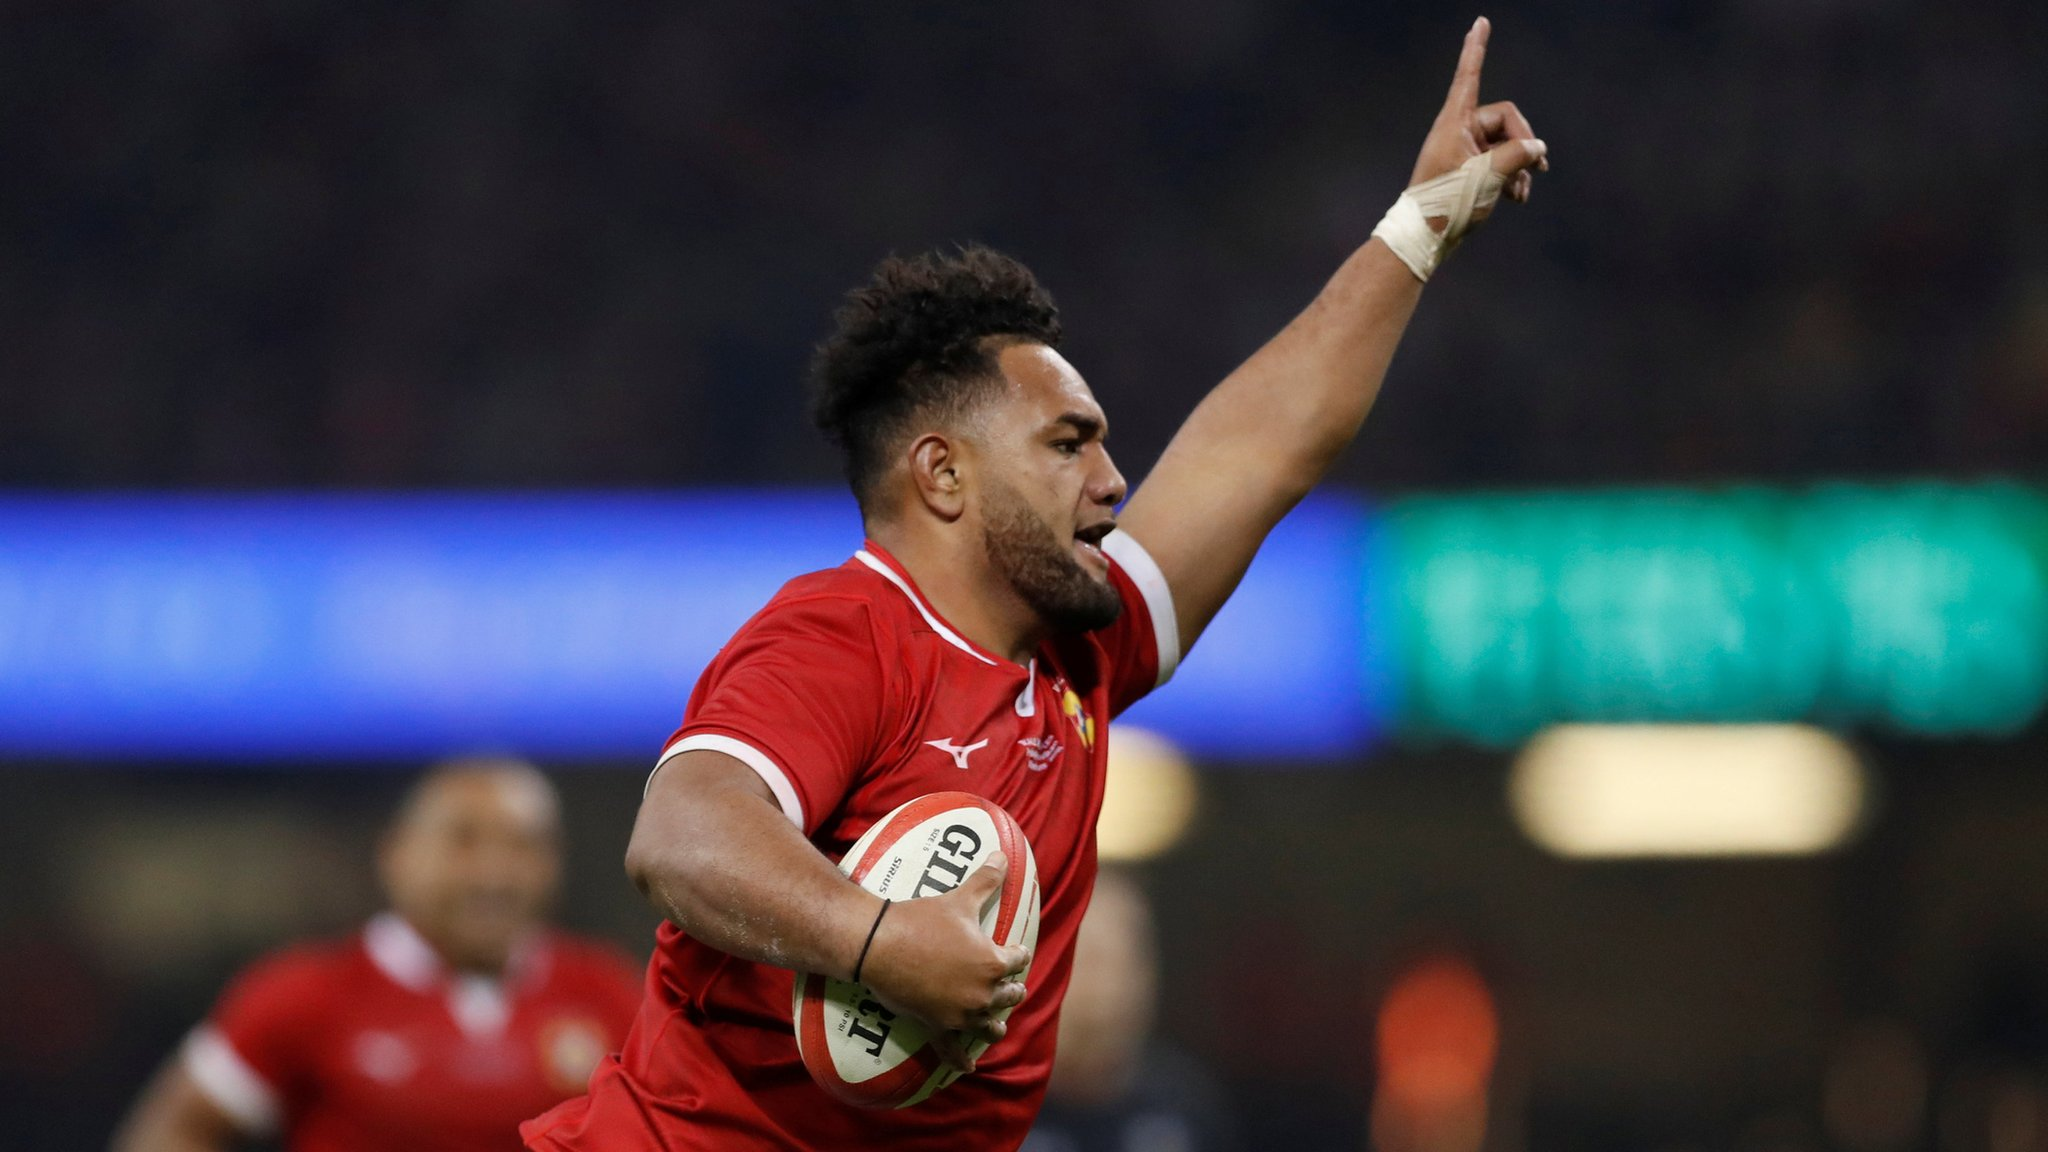 Wales v Tonga: Sione Vailanu races clear for try